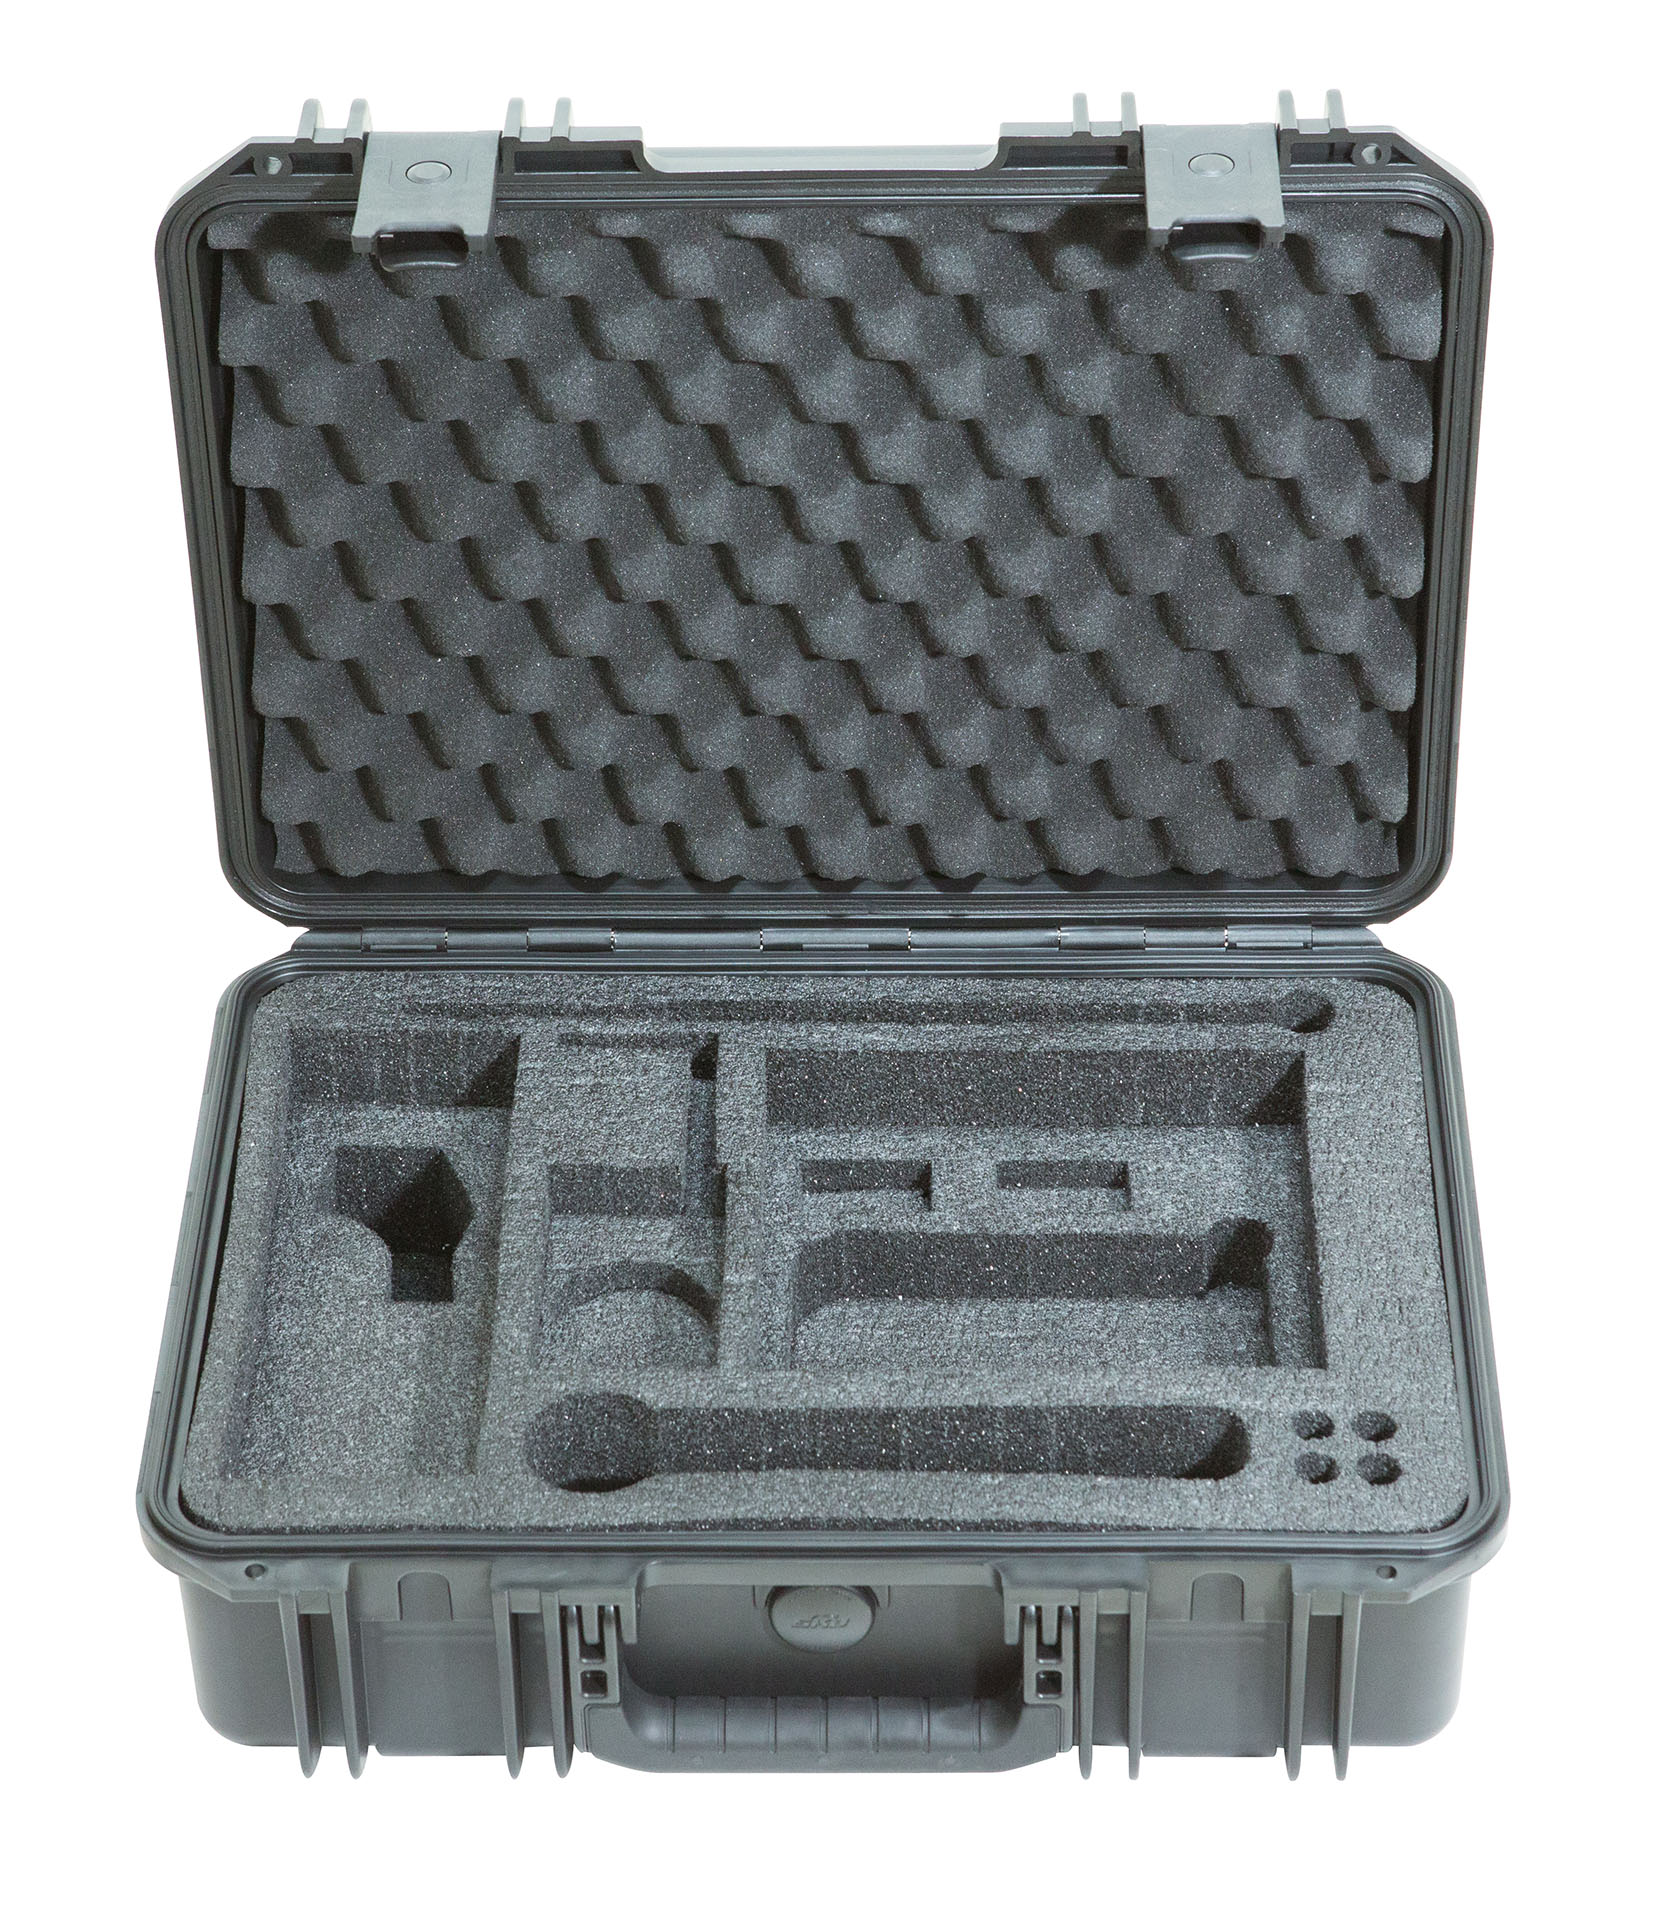 buy skb 3i 1711 xlx injection molded case w foam for shur